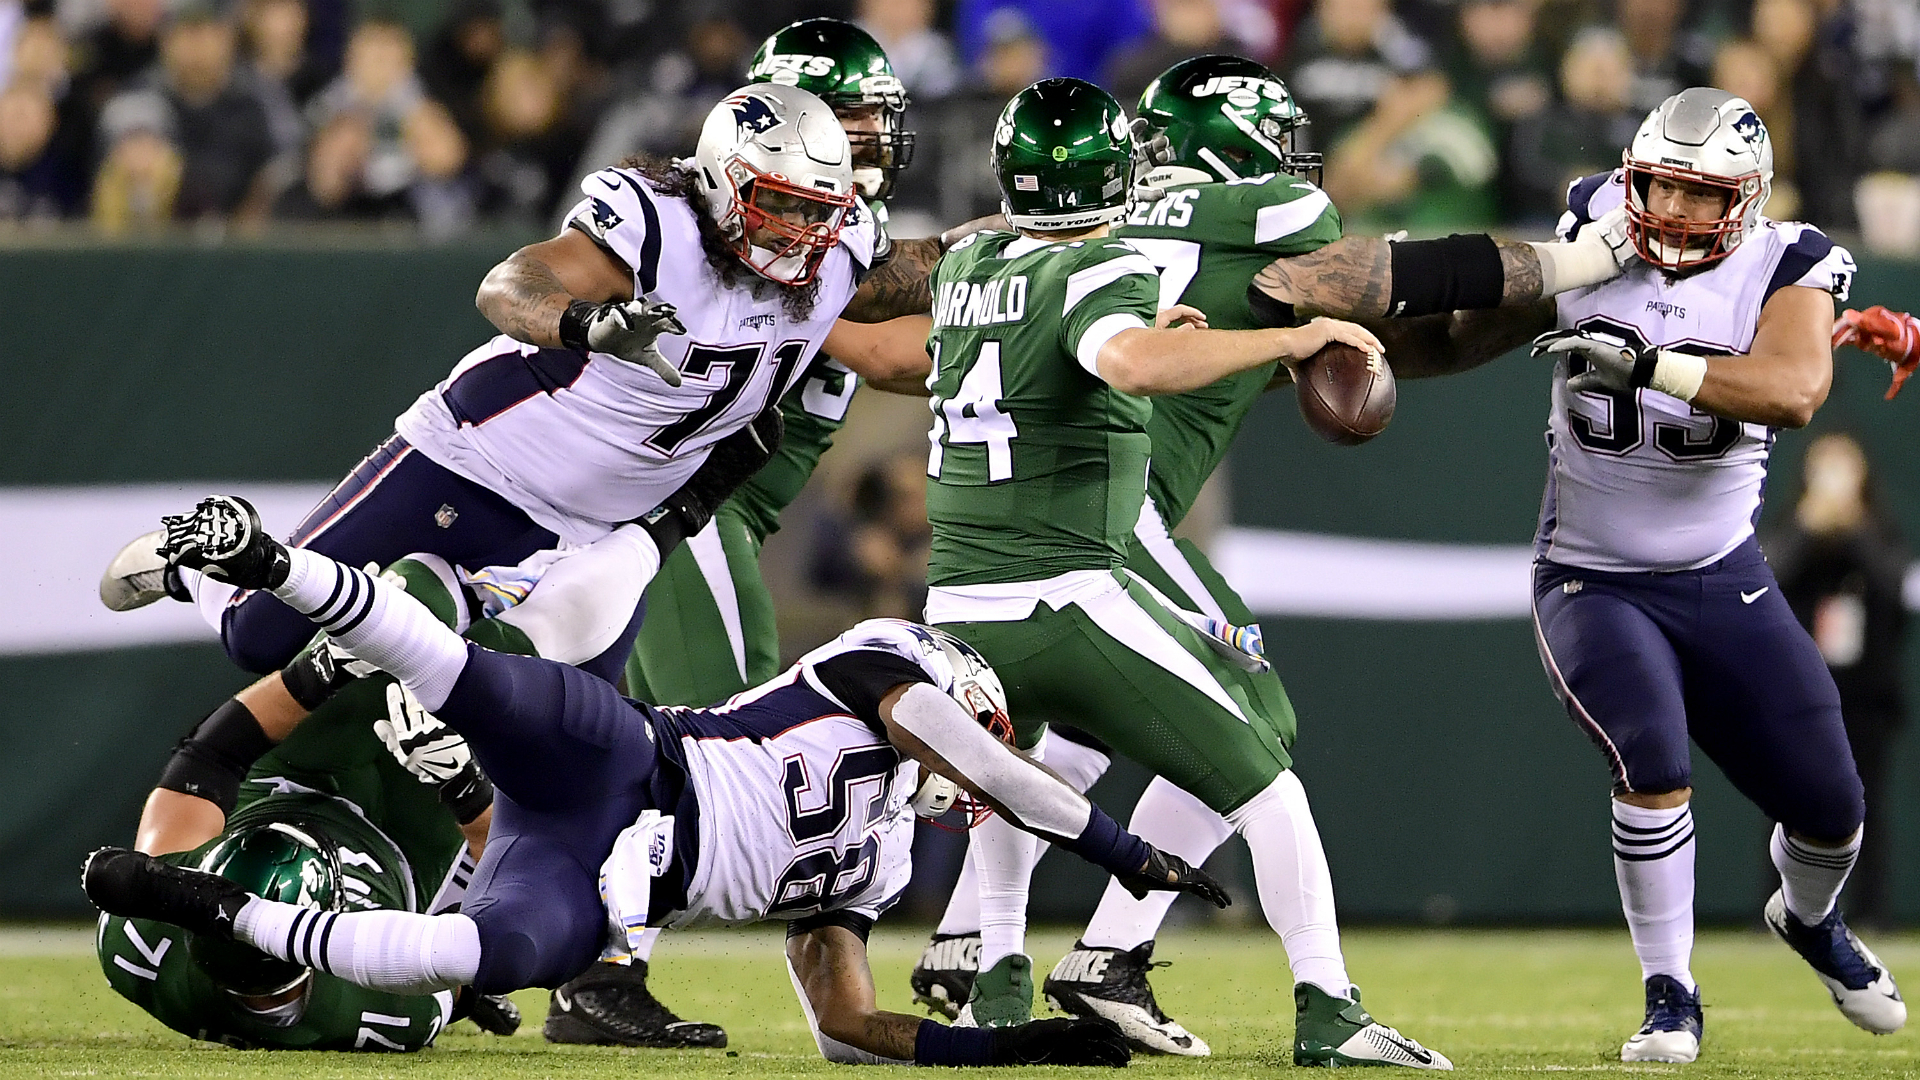 Patriots vs. Jets final score: New England defense spooks Sam Darnold in shutout win